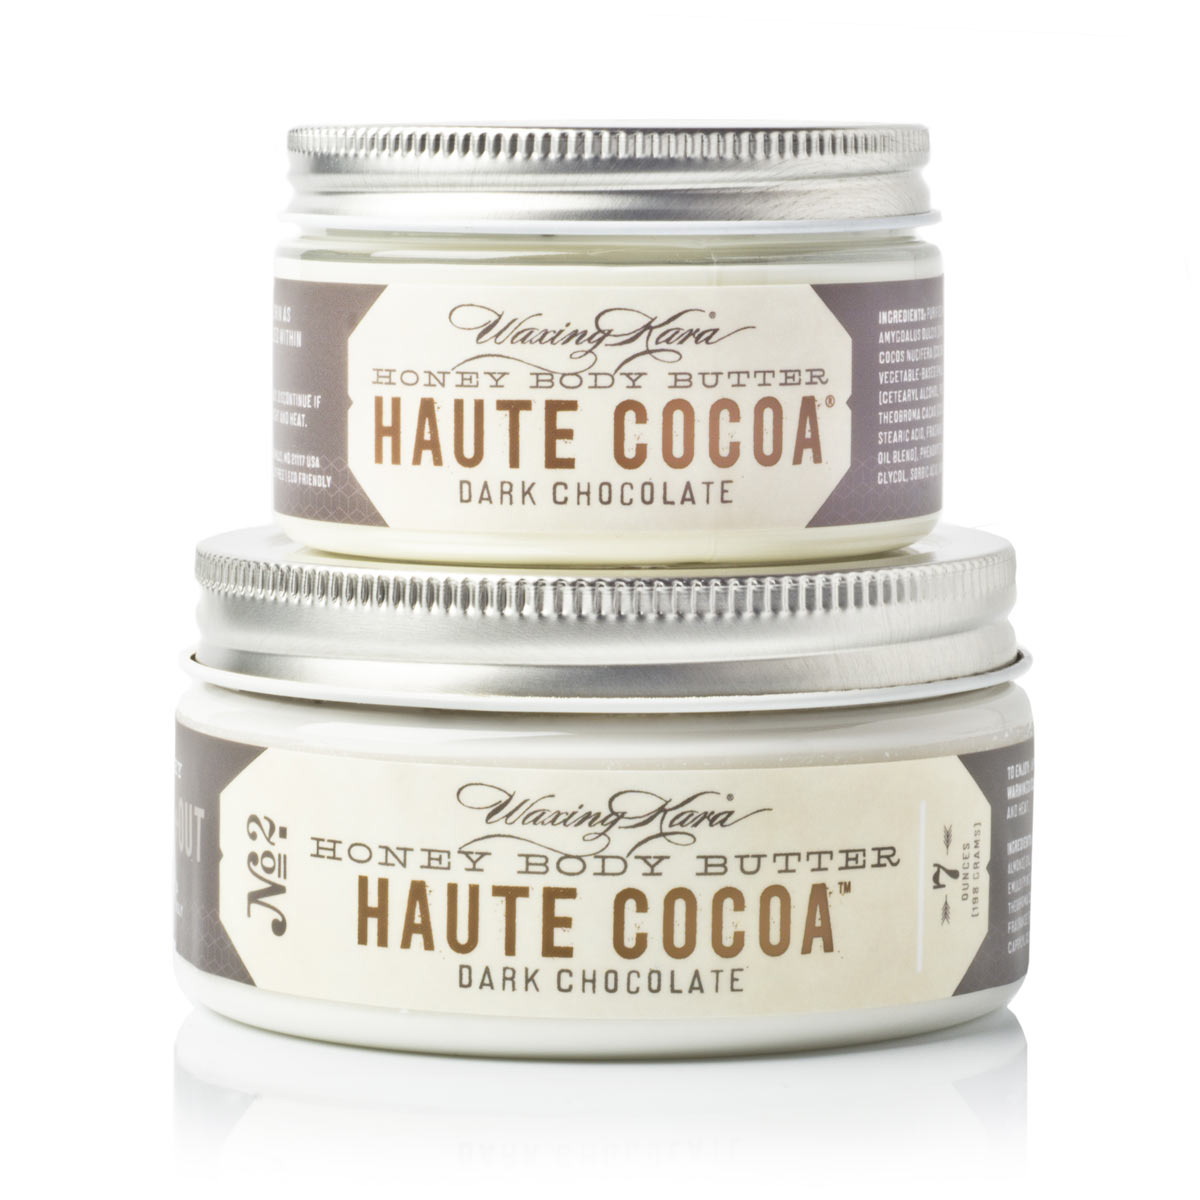 Haute Cocoa Butter in 4oz and 8oz size on white